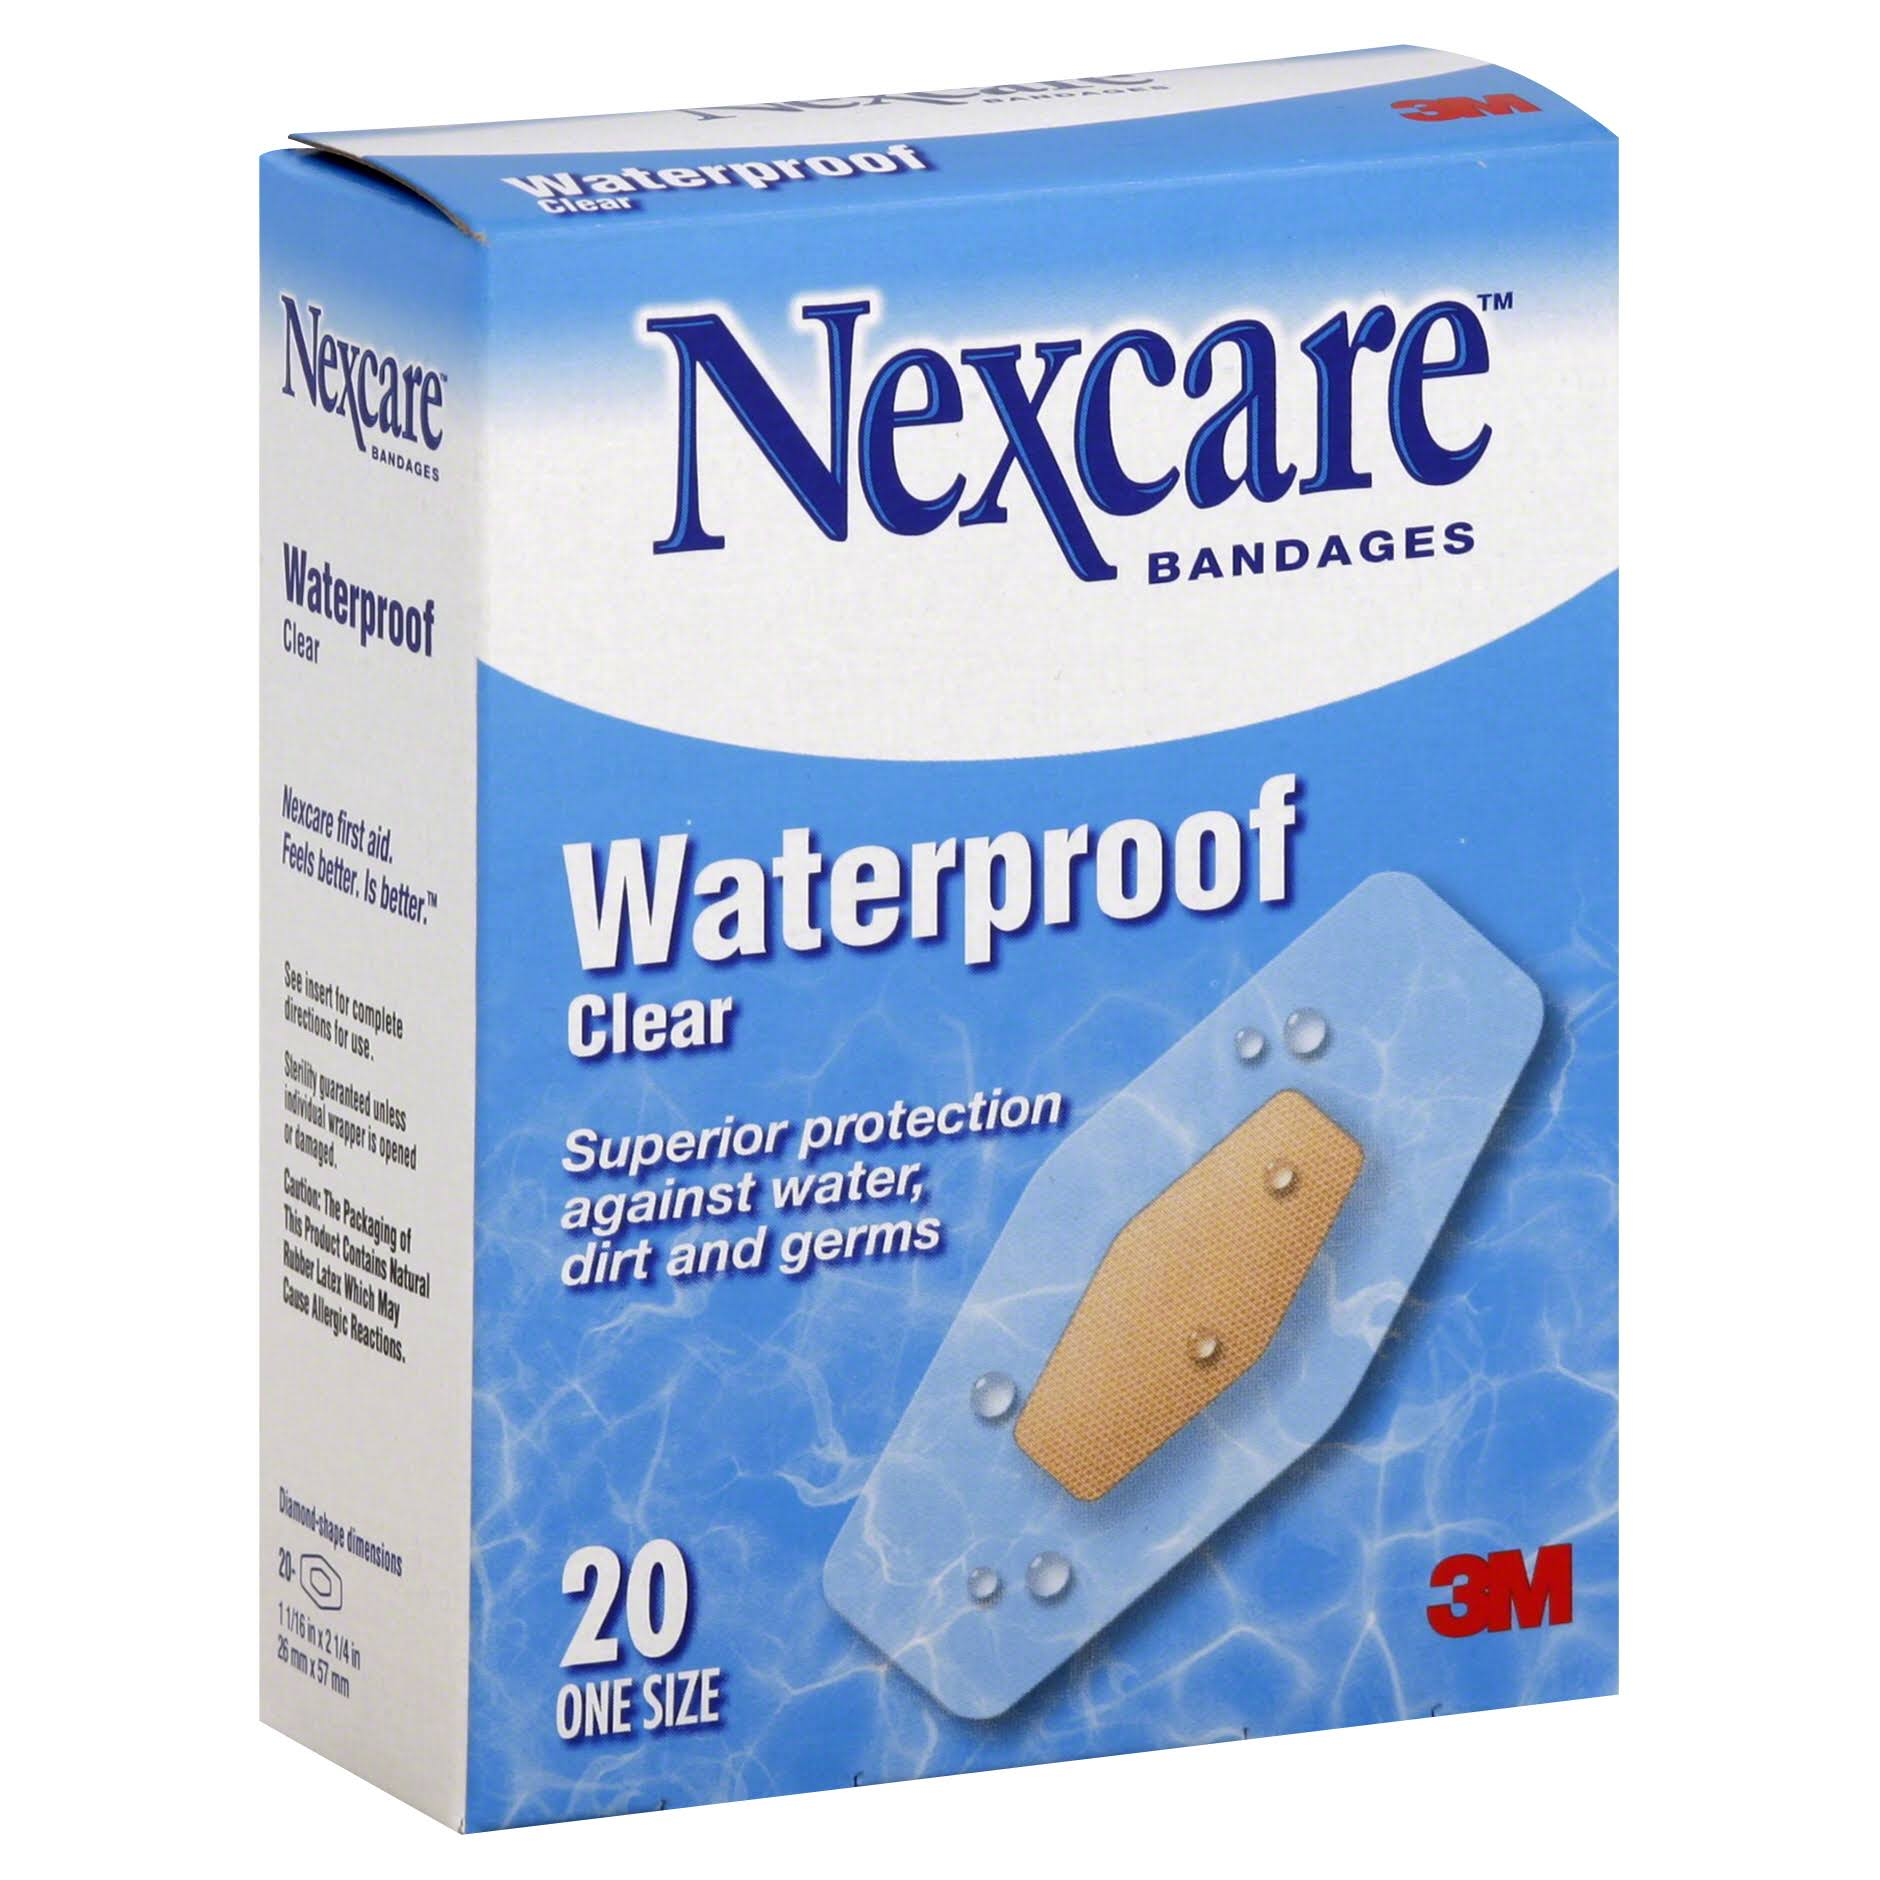 3M Nexcare Waterproof Bandages - Clear, x20